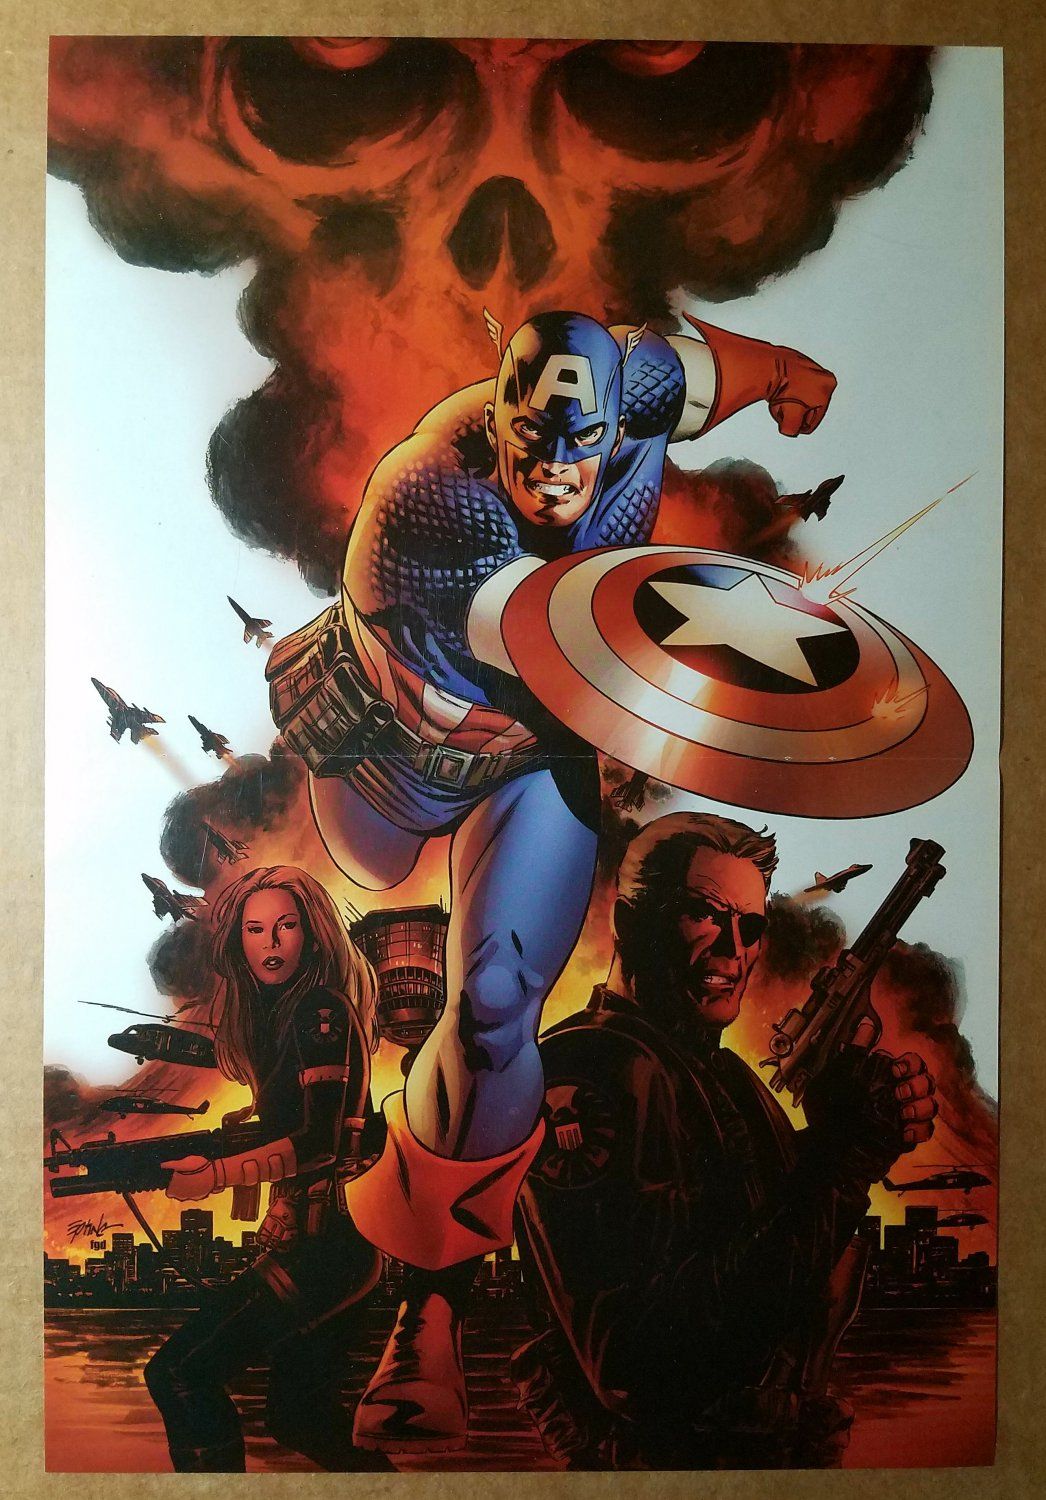 Avengers Captain America Marvel Comics Poster by Steve Epting